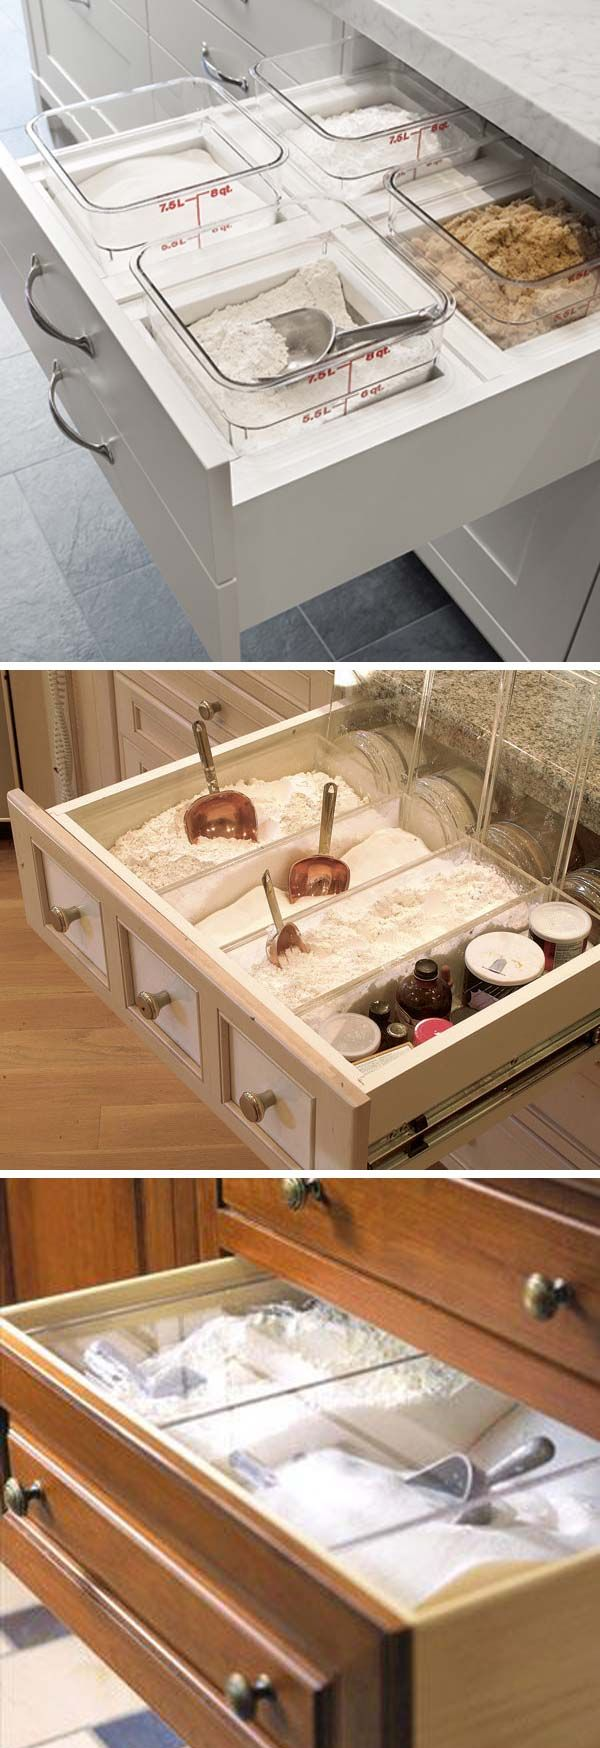 Kitchen is the most important room of a family, and every inch of it you need to make good use of, just as kitchen cabinets that are so important space in a kitchen. After all, there is nothing quite so satisfying as a well organized cabinets. Maybe you have cabinets with a bunch of drawers […]